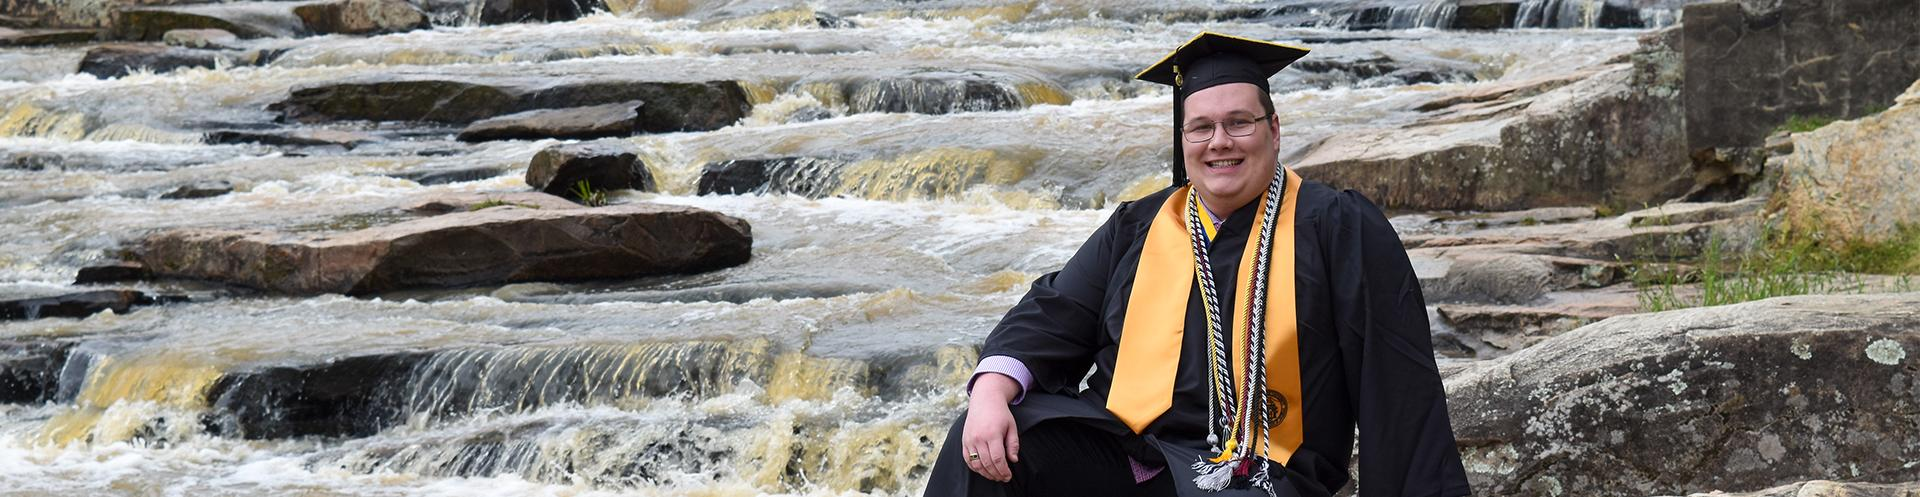 Honors alum aspires to meet mental health needs in rural communities